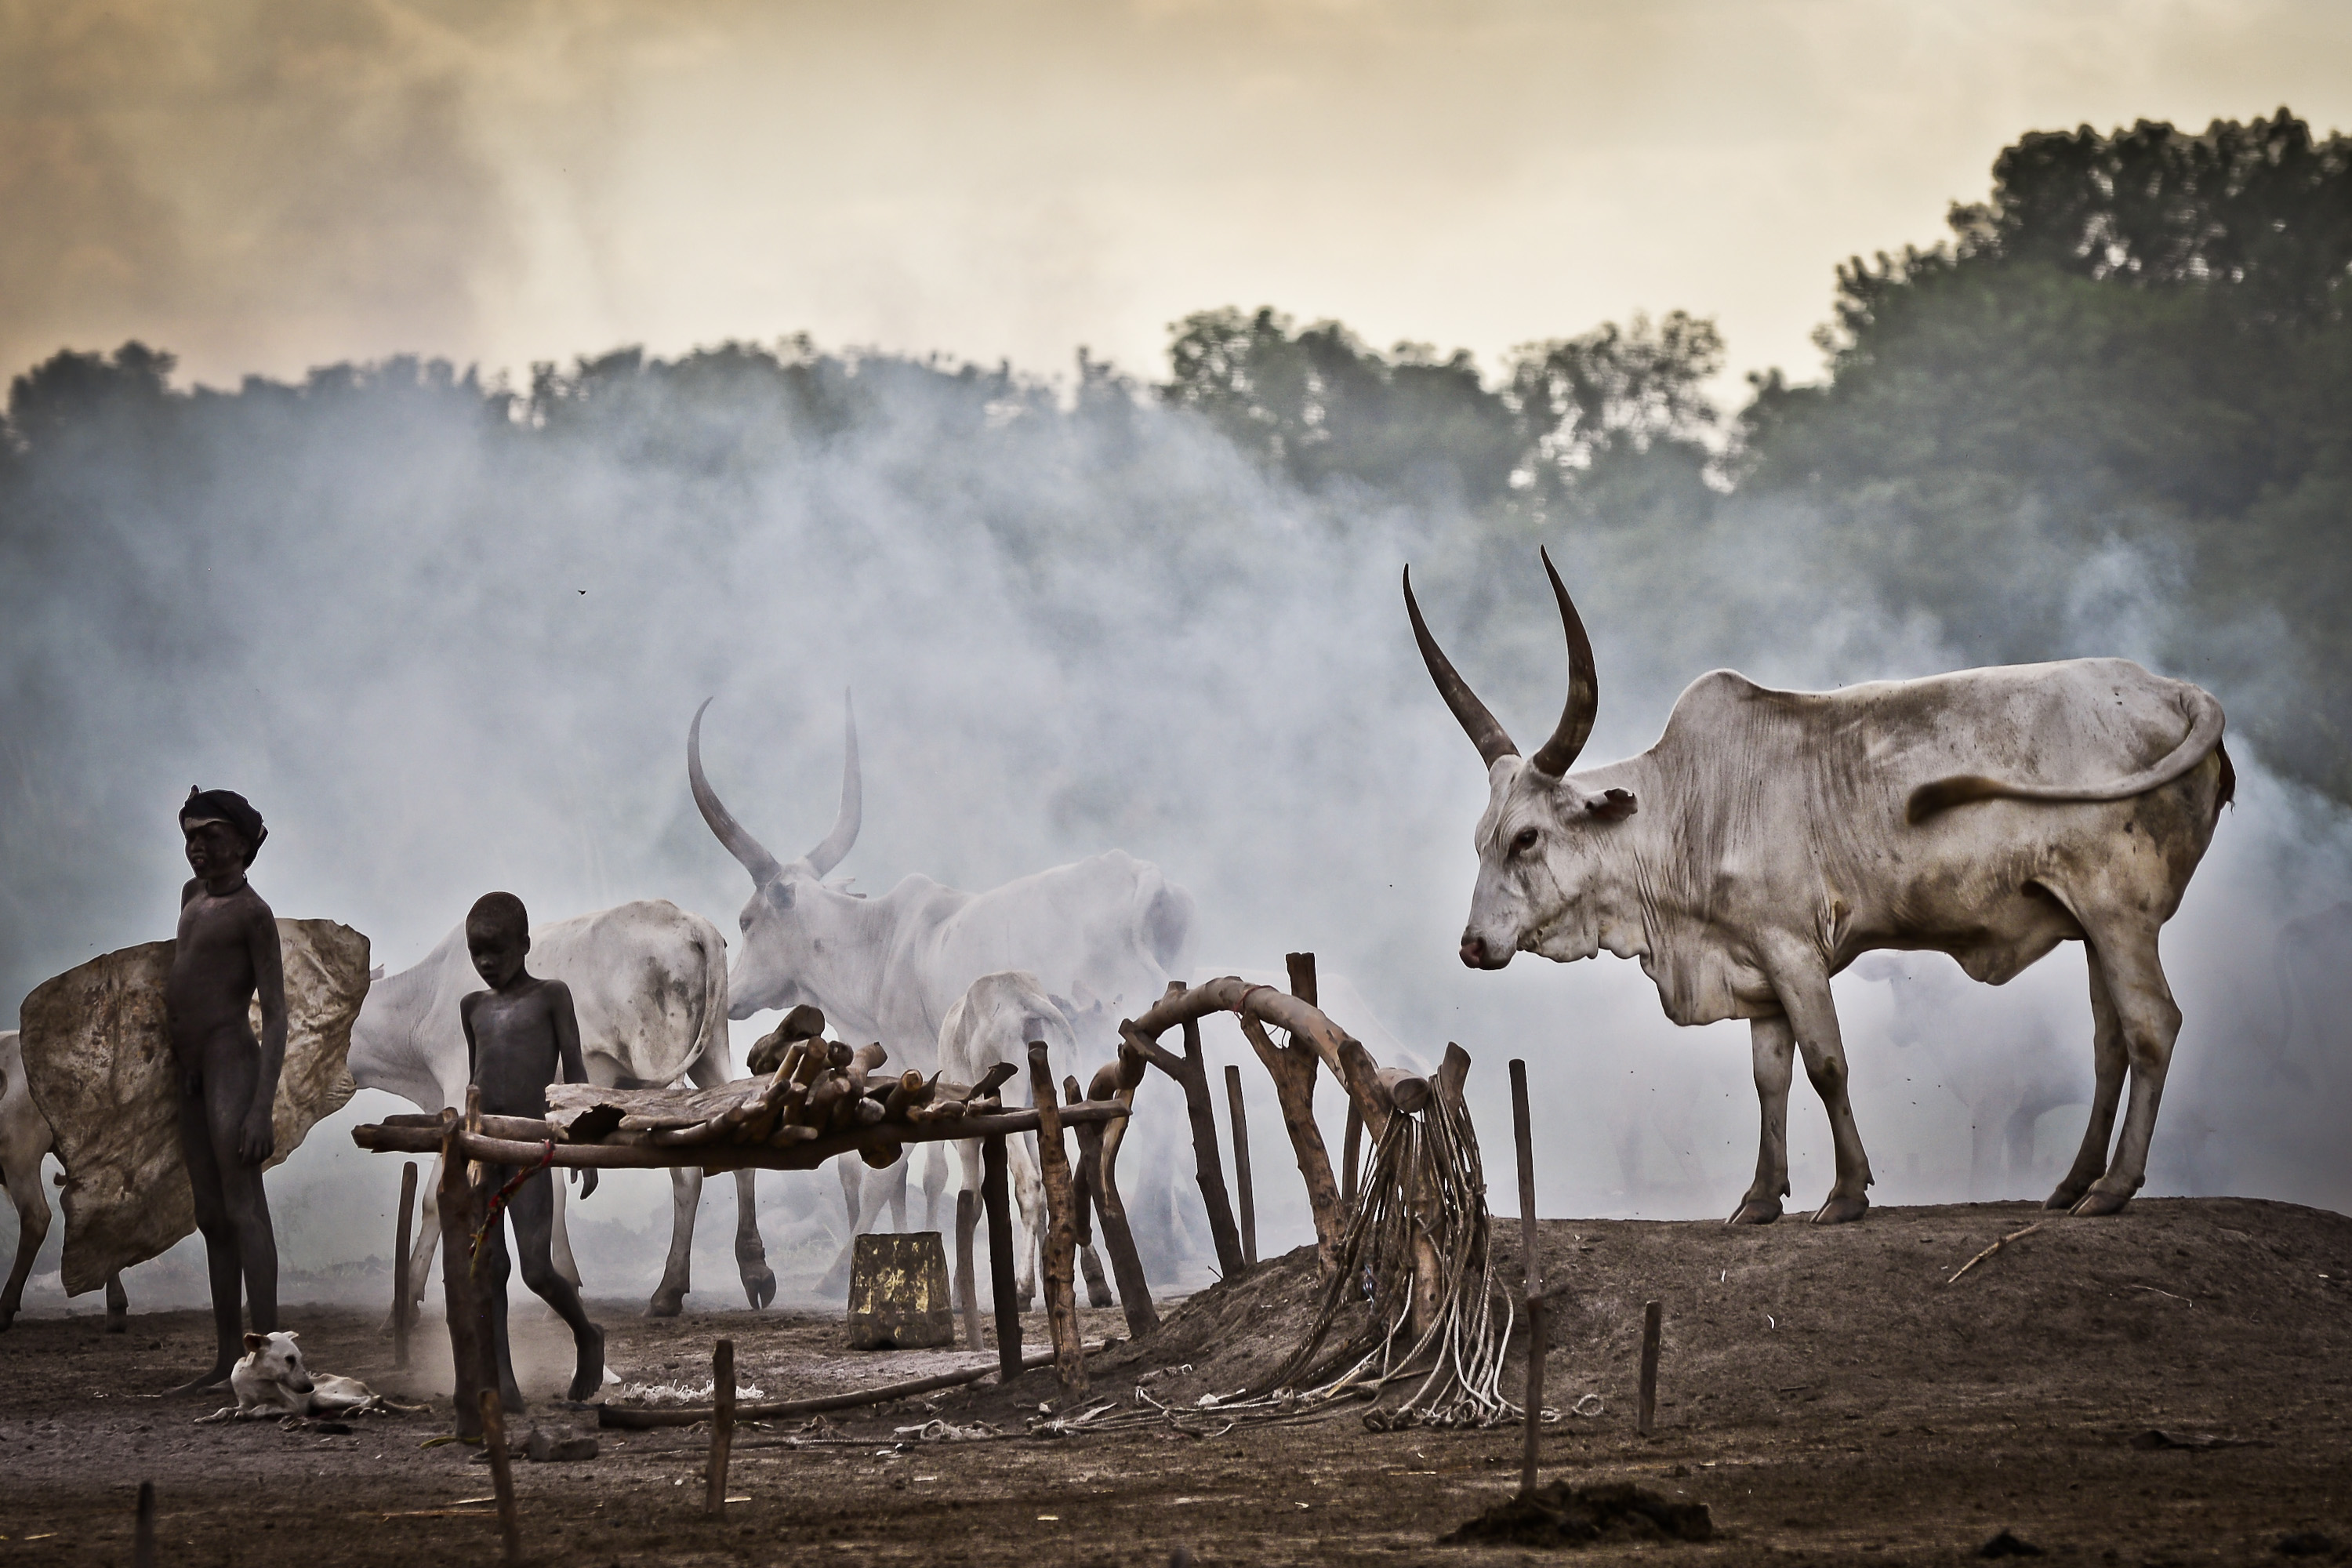 Mundari cattle camp, South Sudan